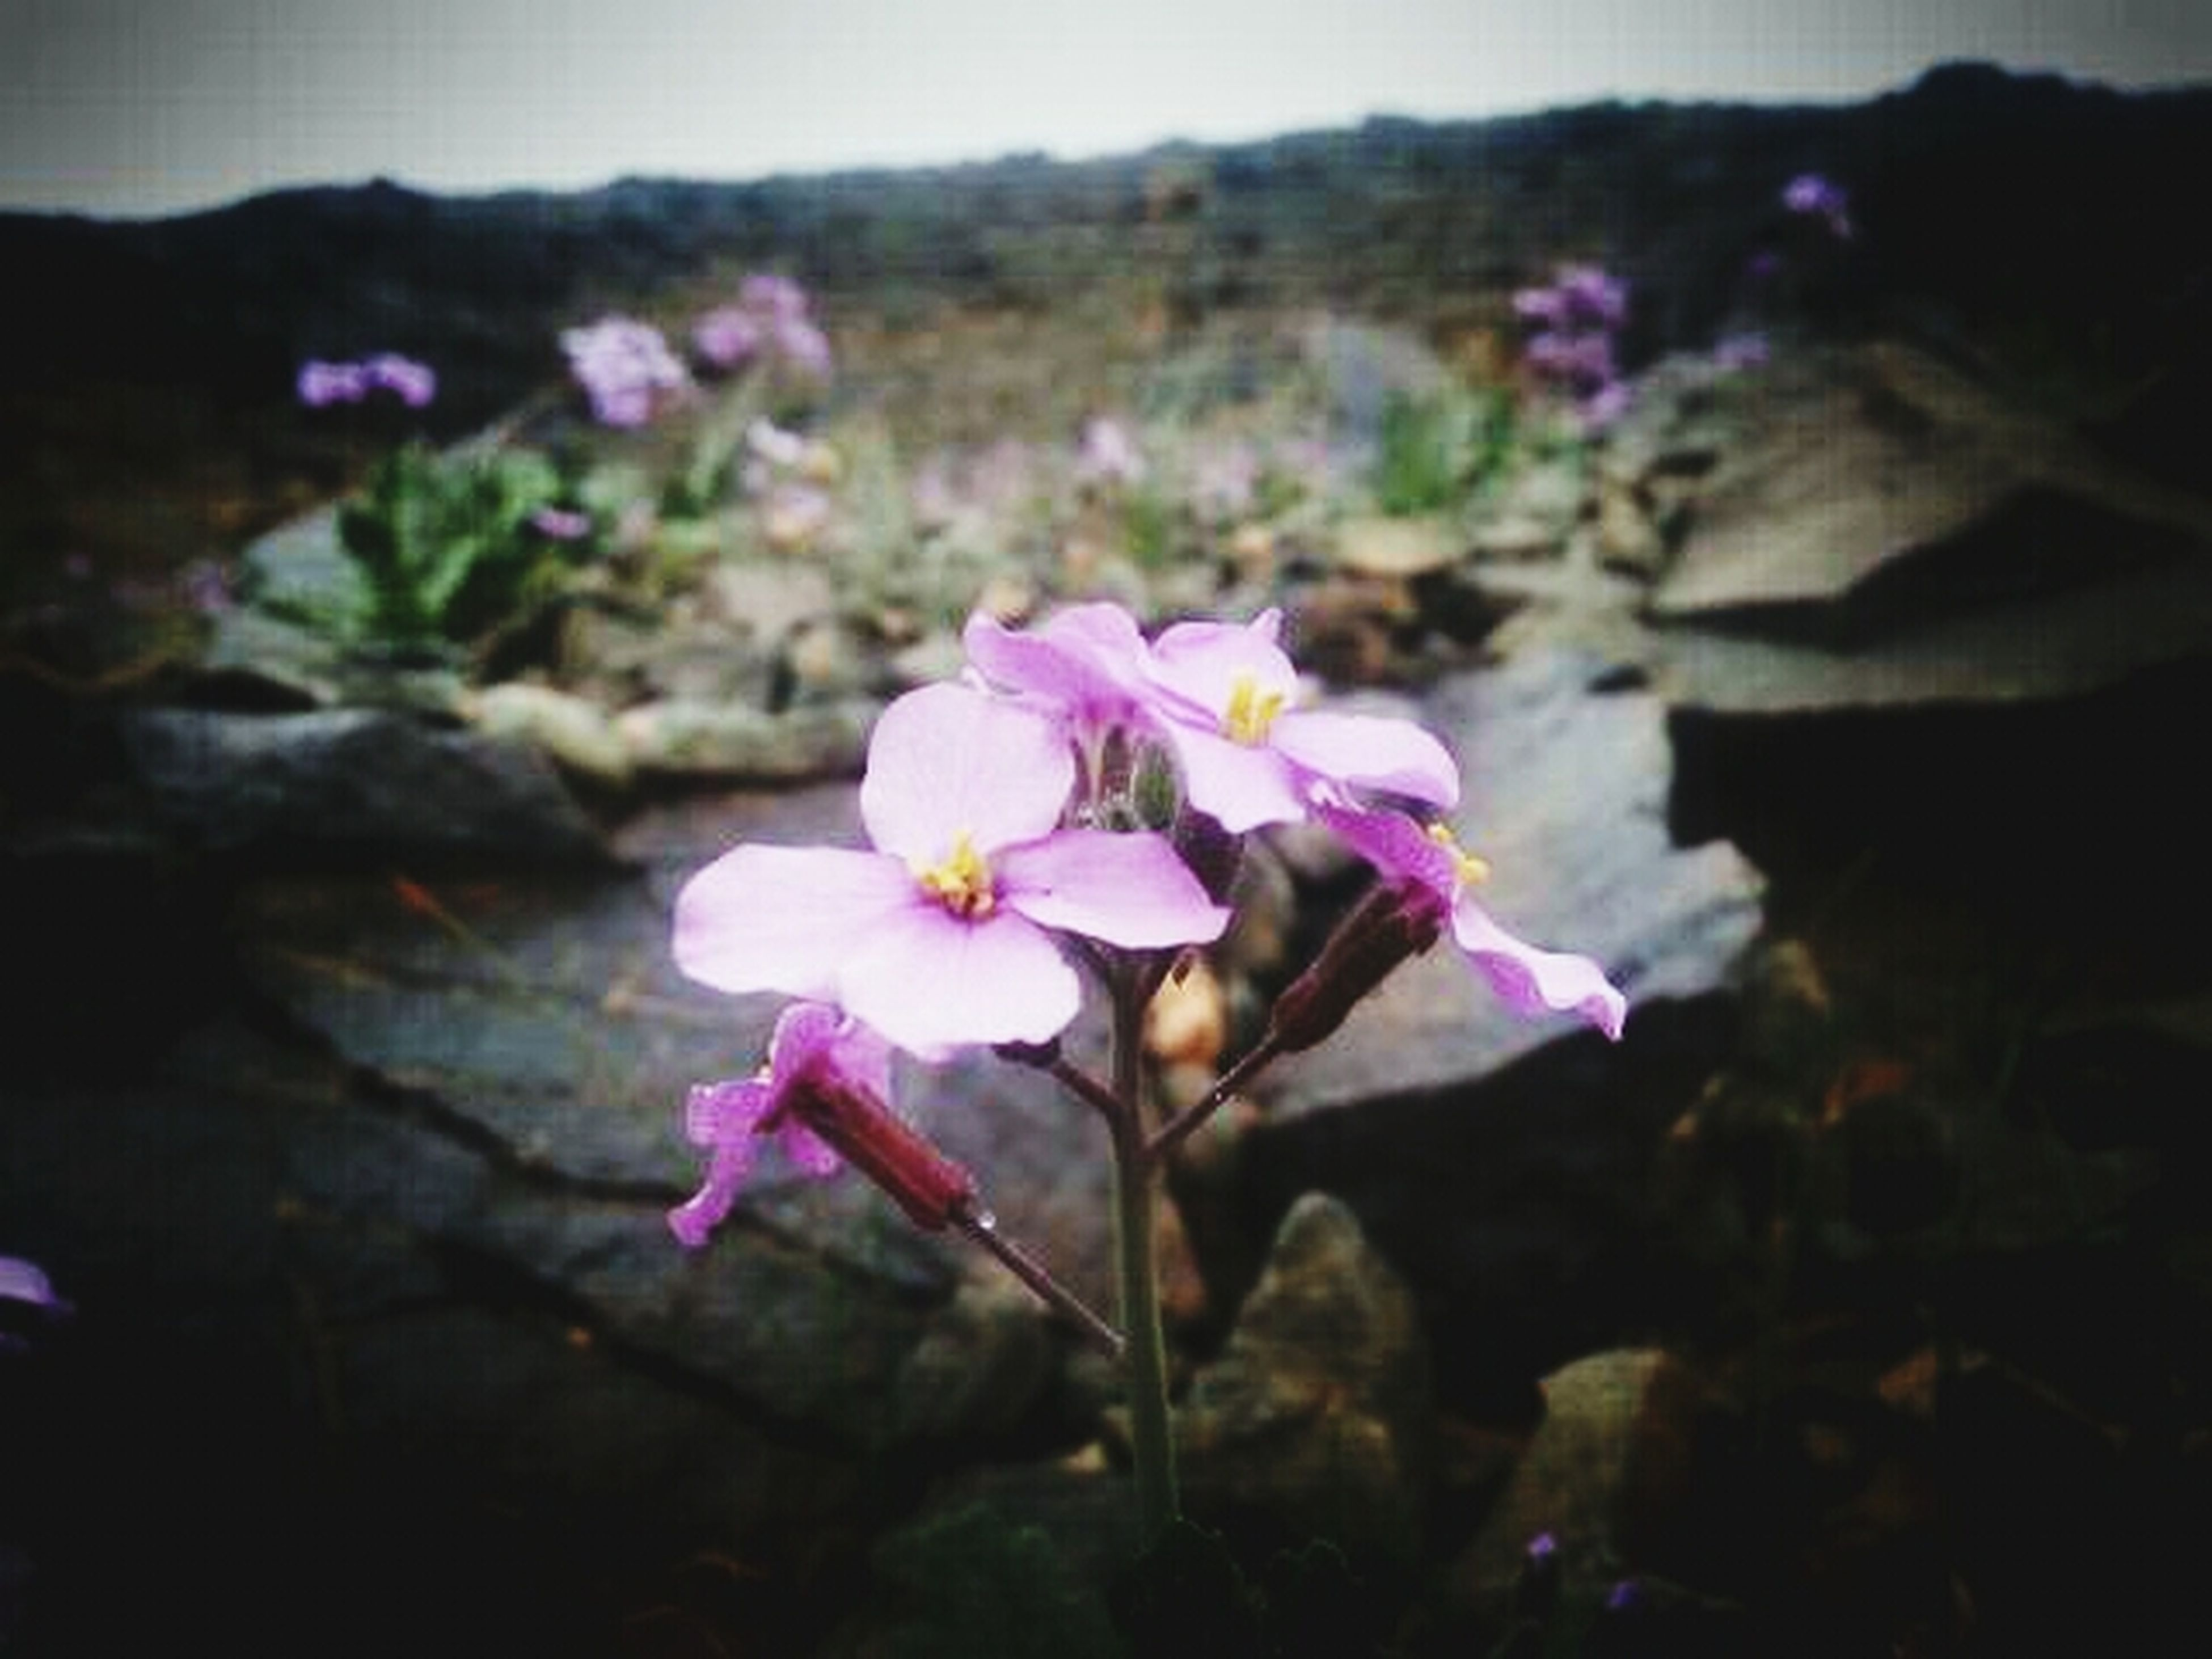 flower, freshness, fragility, petal, growth, flower head, beauty in nature, close-up, nature, focus on foreground, blooming, pink color, plant, purple, blossom, in bloom, stem, selective focus, outdoors, no people